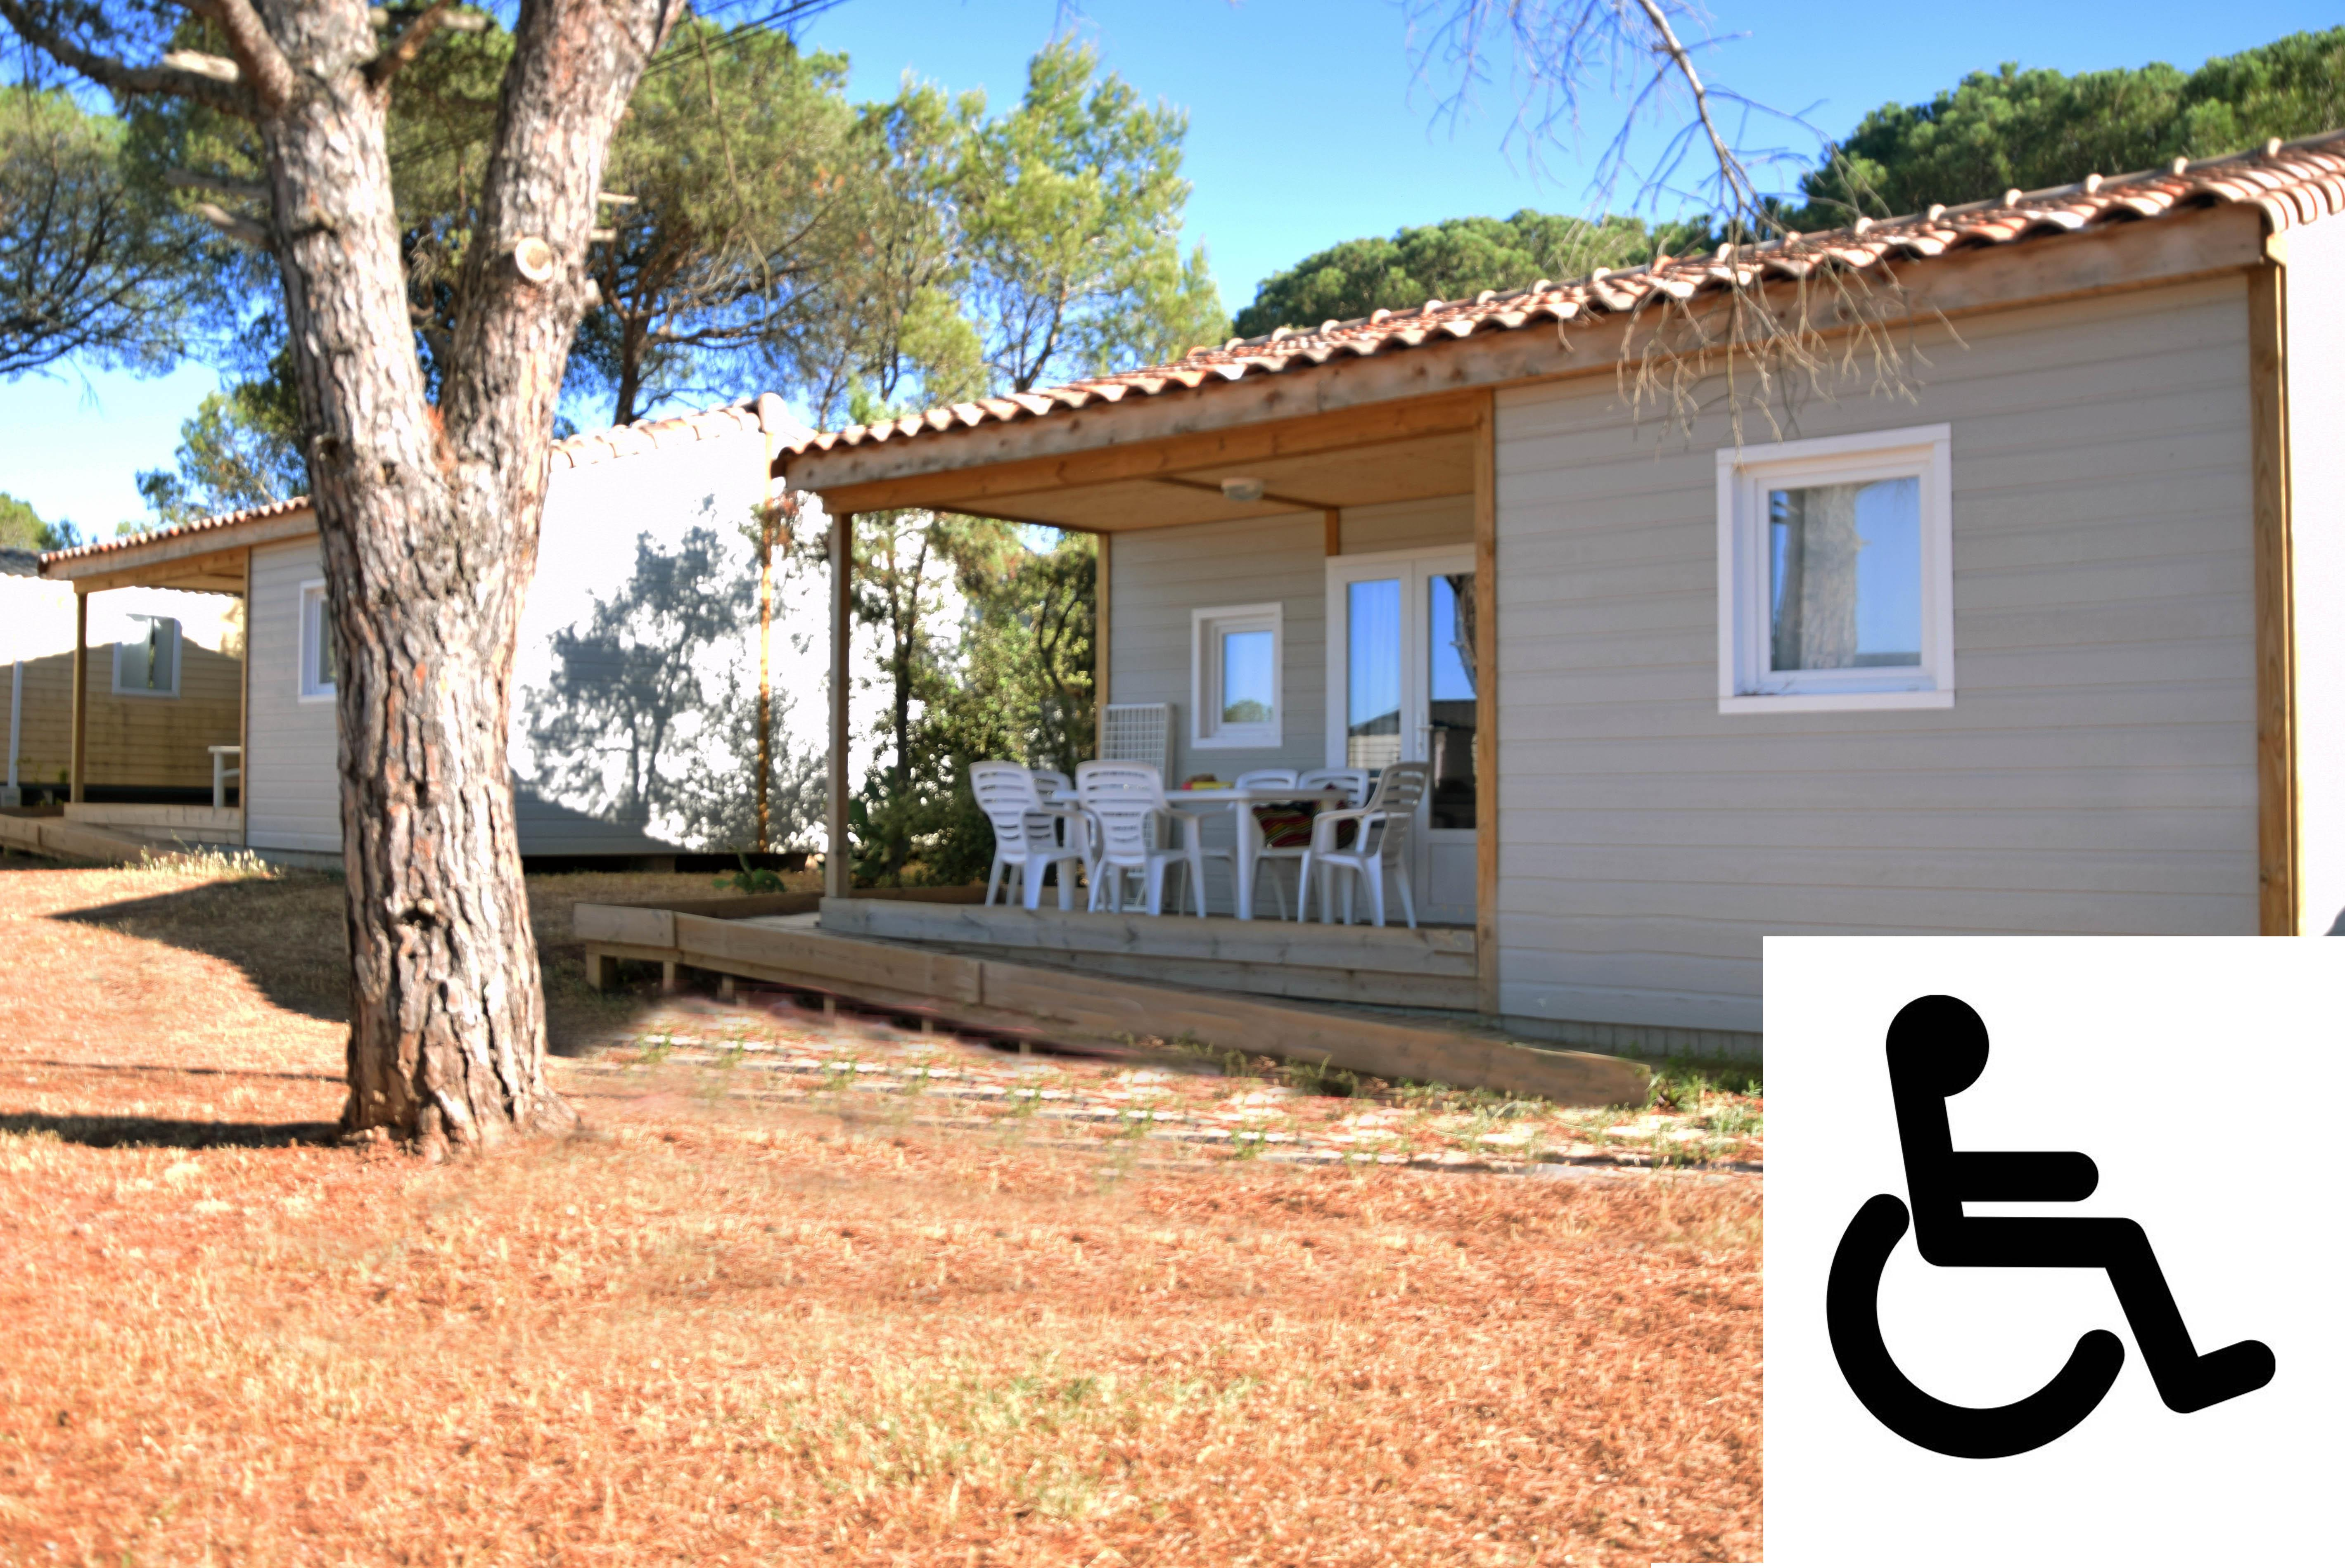 Location - Chalet Chicana (Pmr) 6 Pers. + 1 Place Véhicule. Eco - Camping Les Cigales